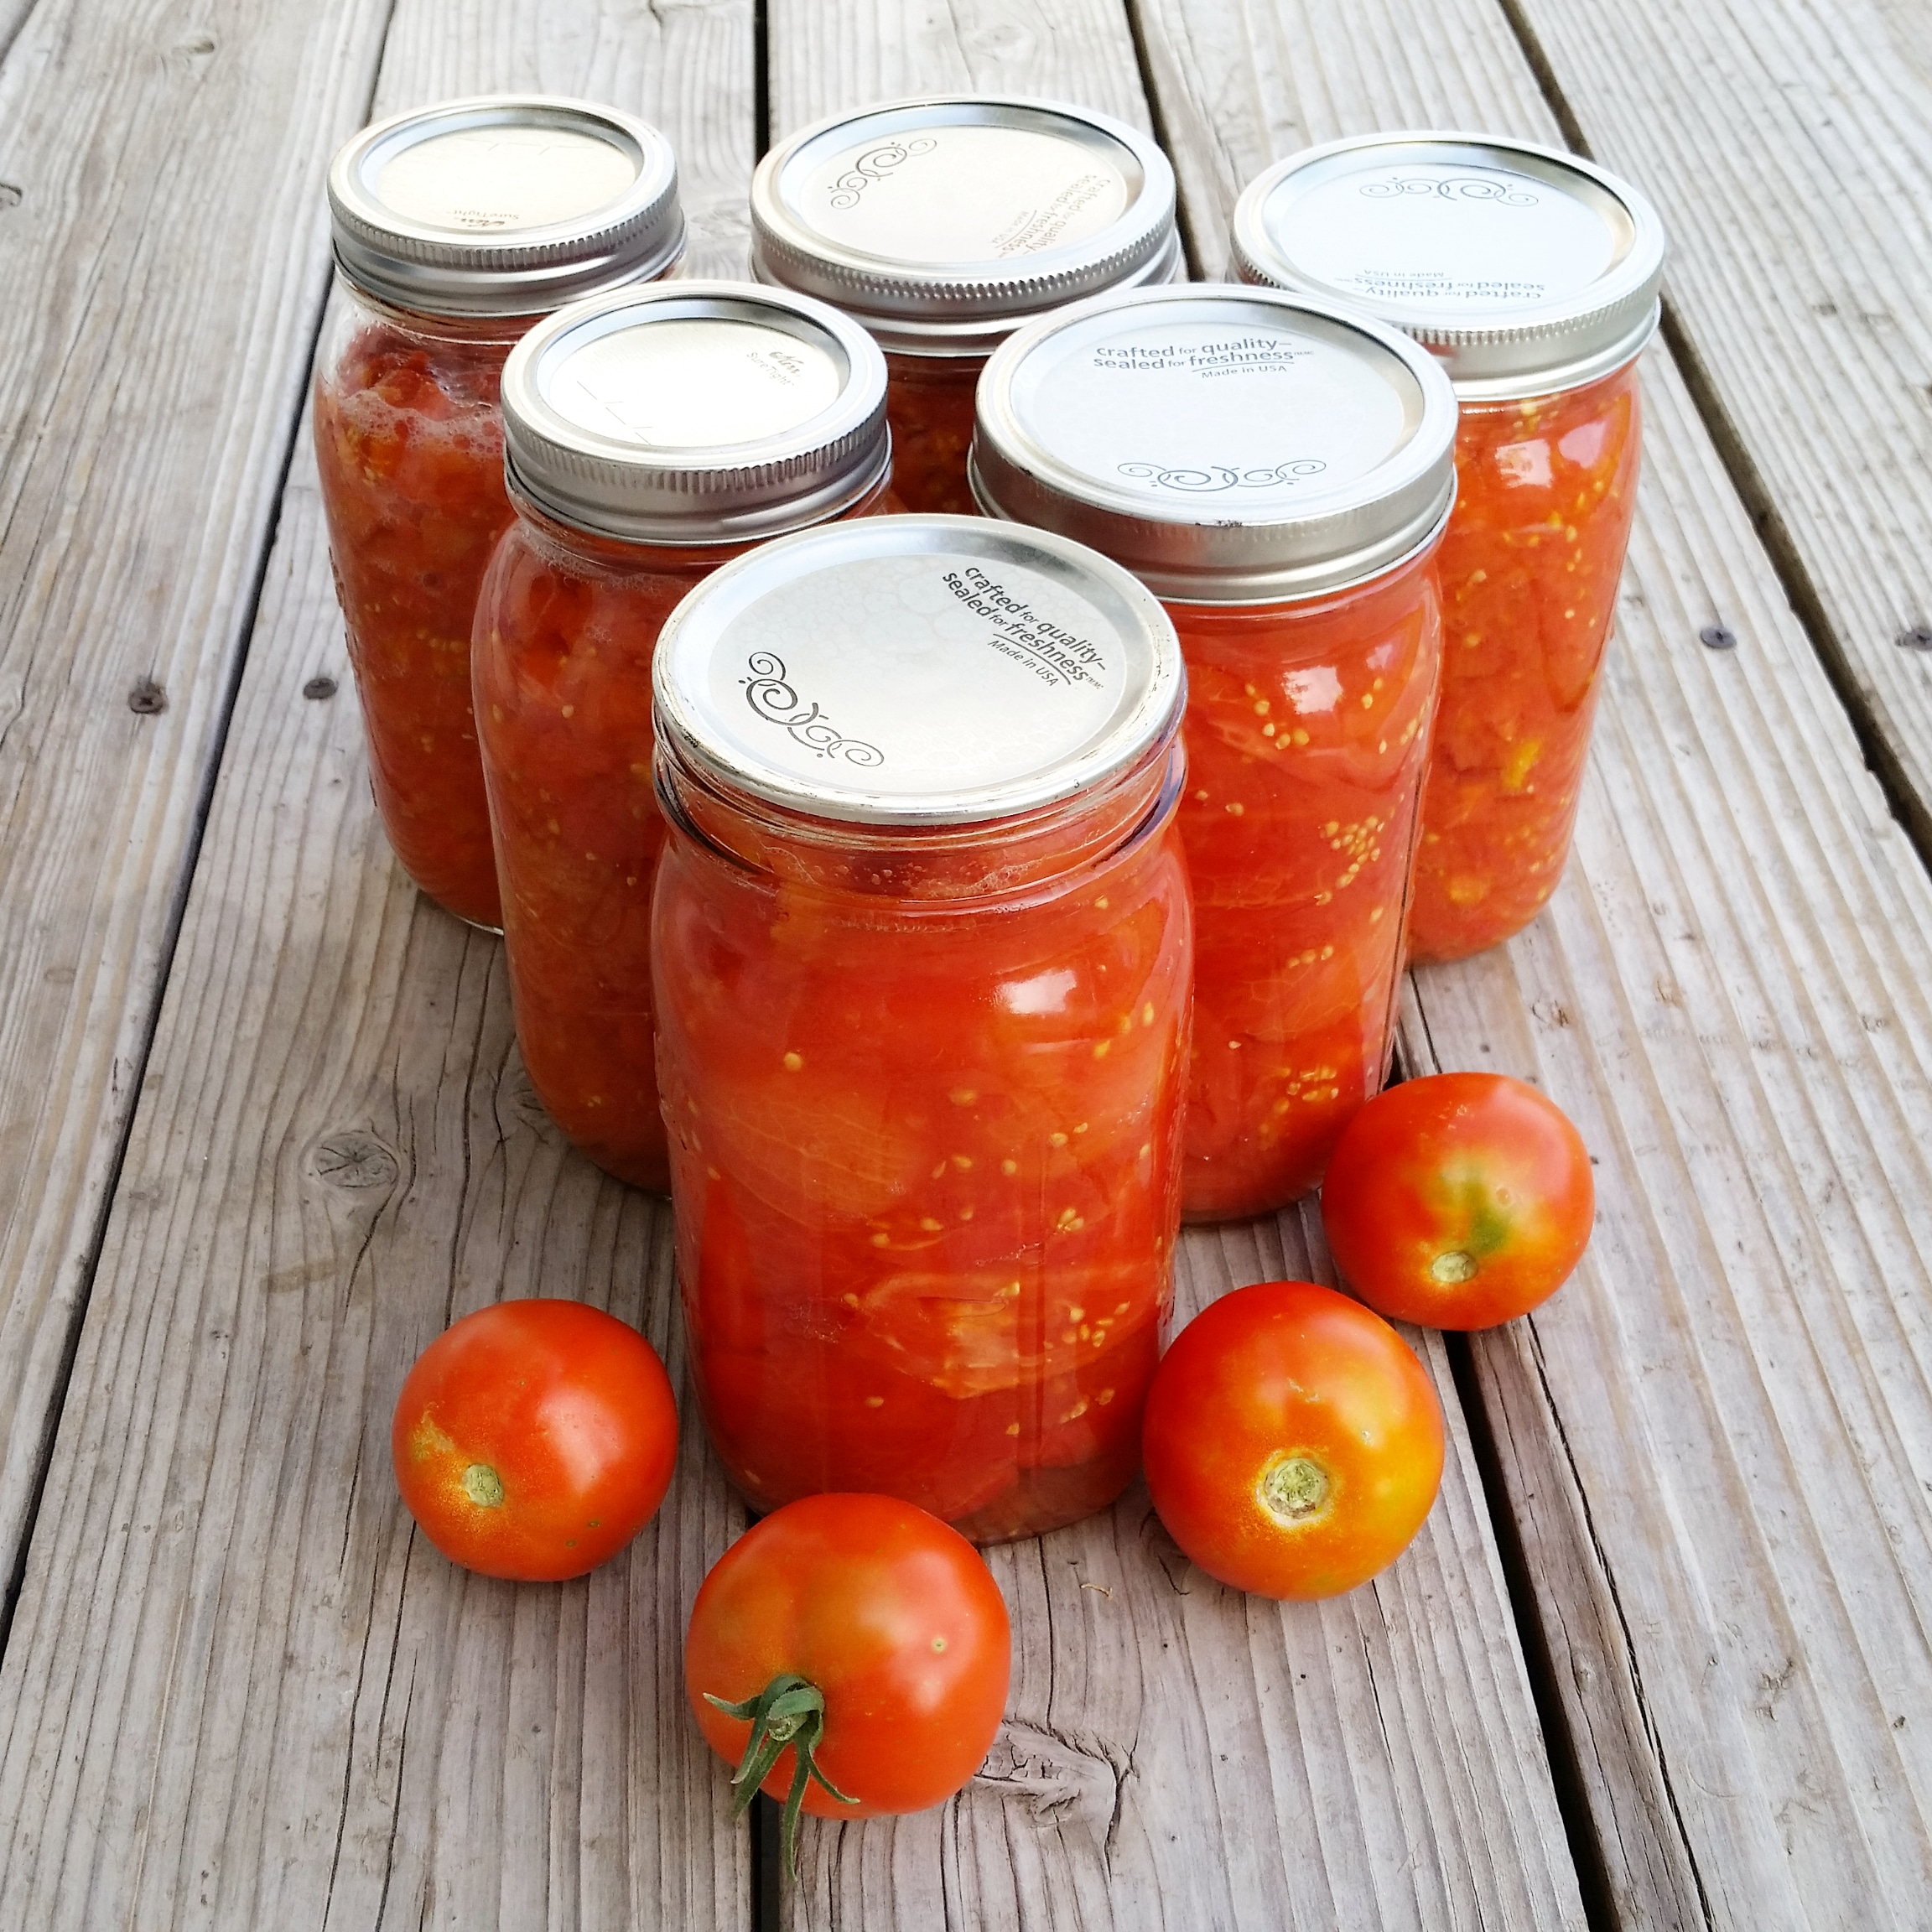 Cold Pack Steam Canning Tomatoes Easy Method Hearty Smarty